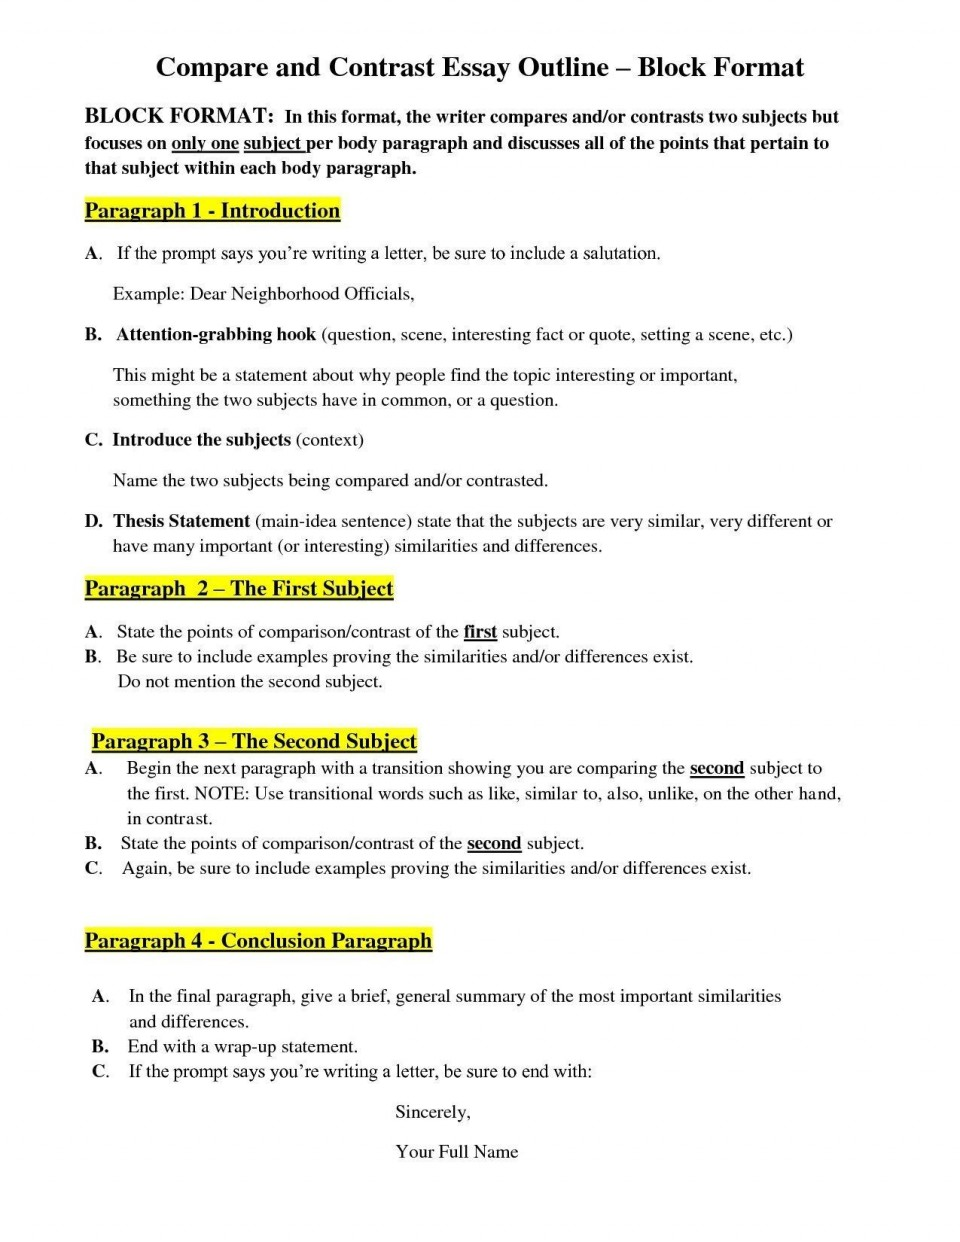 014 Essay Examplempare Andntrastmparison Best Examples Of Scenario In 6th Grade An Goo 3rd Food 5th Middle School Block Format Pdf High 4th Vs Striking Compare And Contrast Example Fourth 7th 960